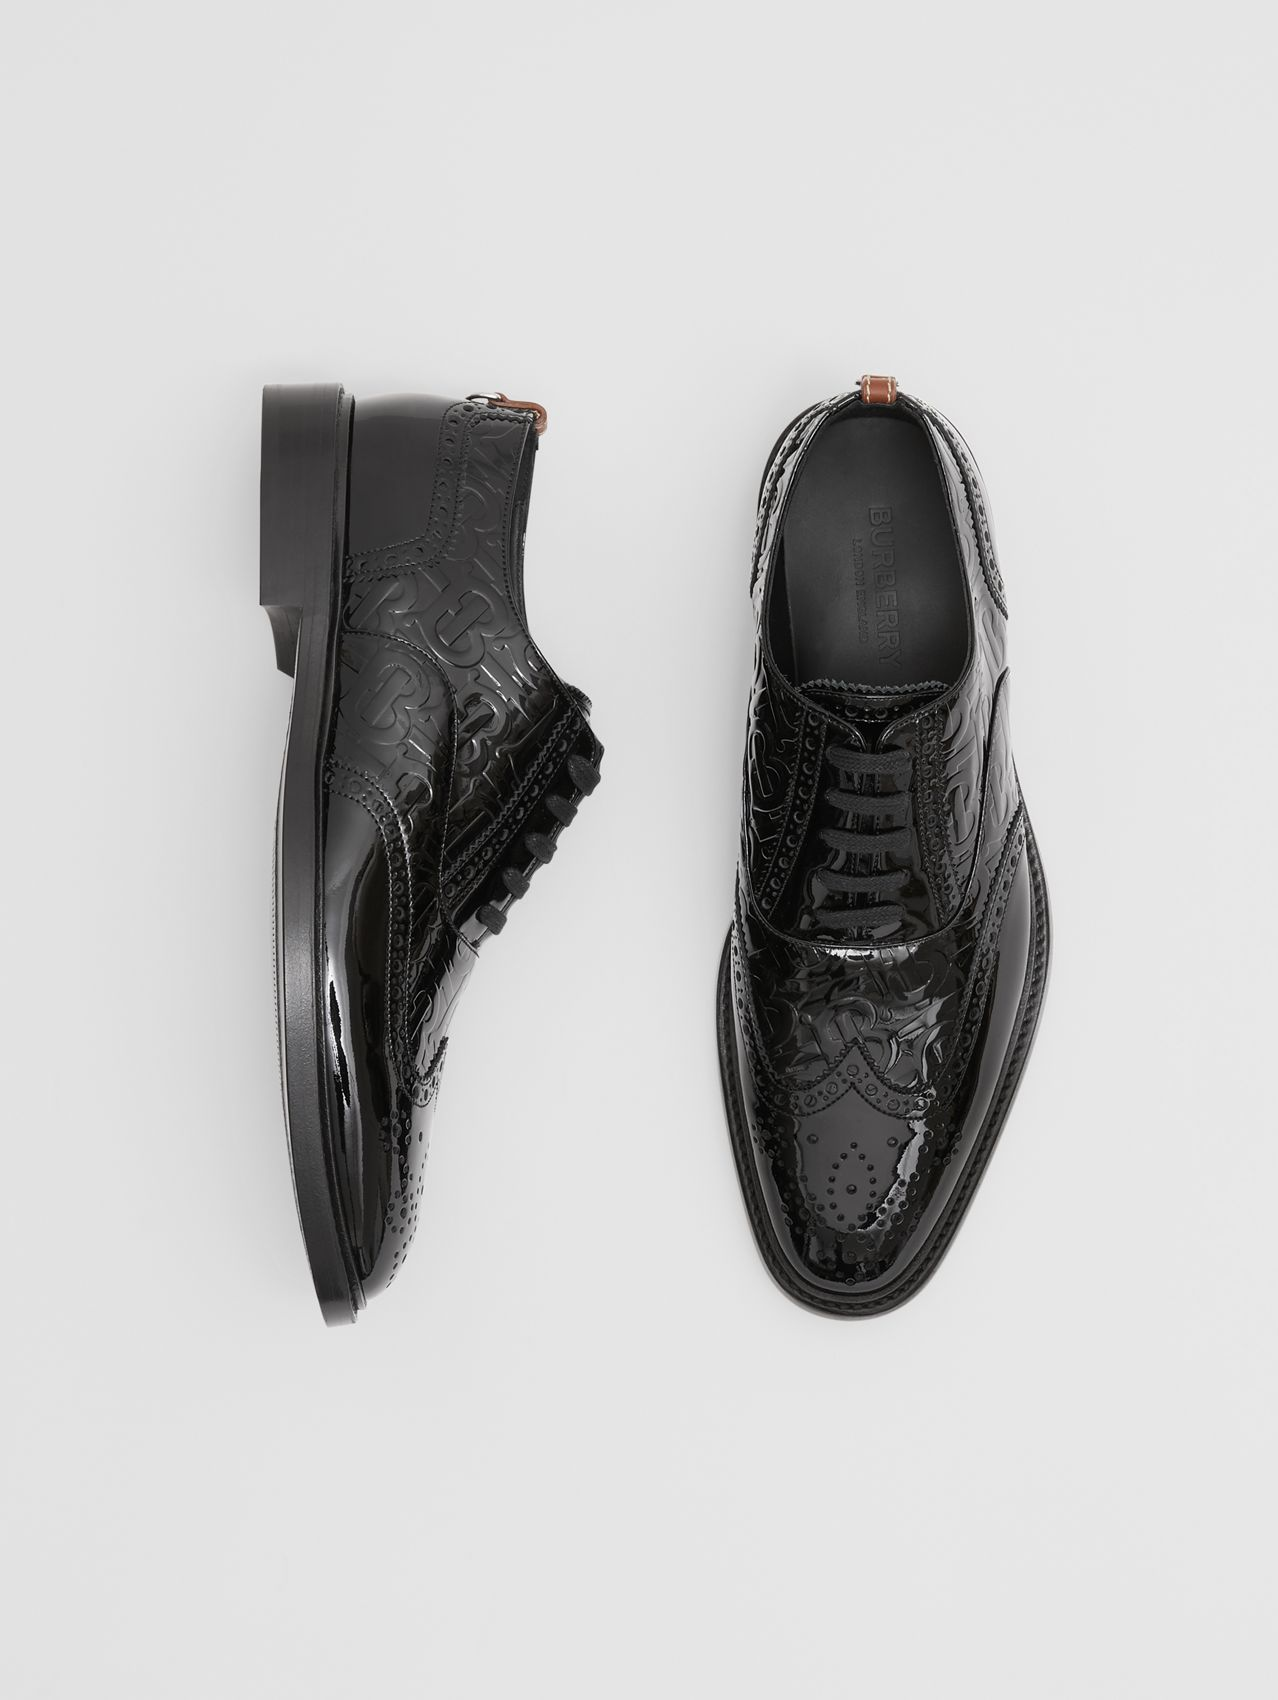 D-ring Detail Monogram Patent Leather Brogues in Black